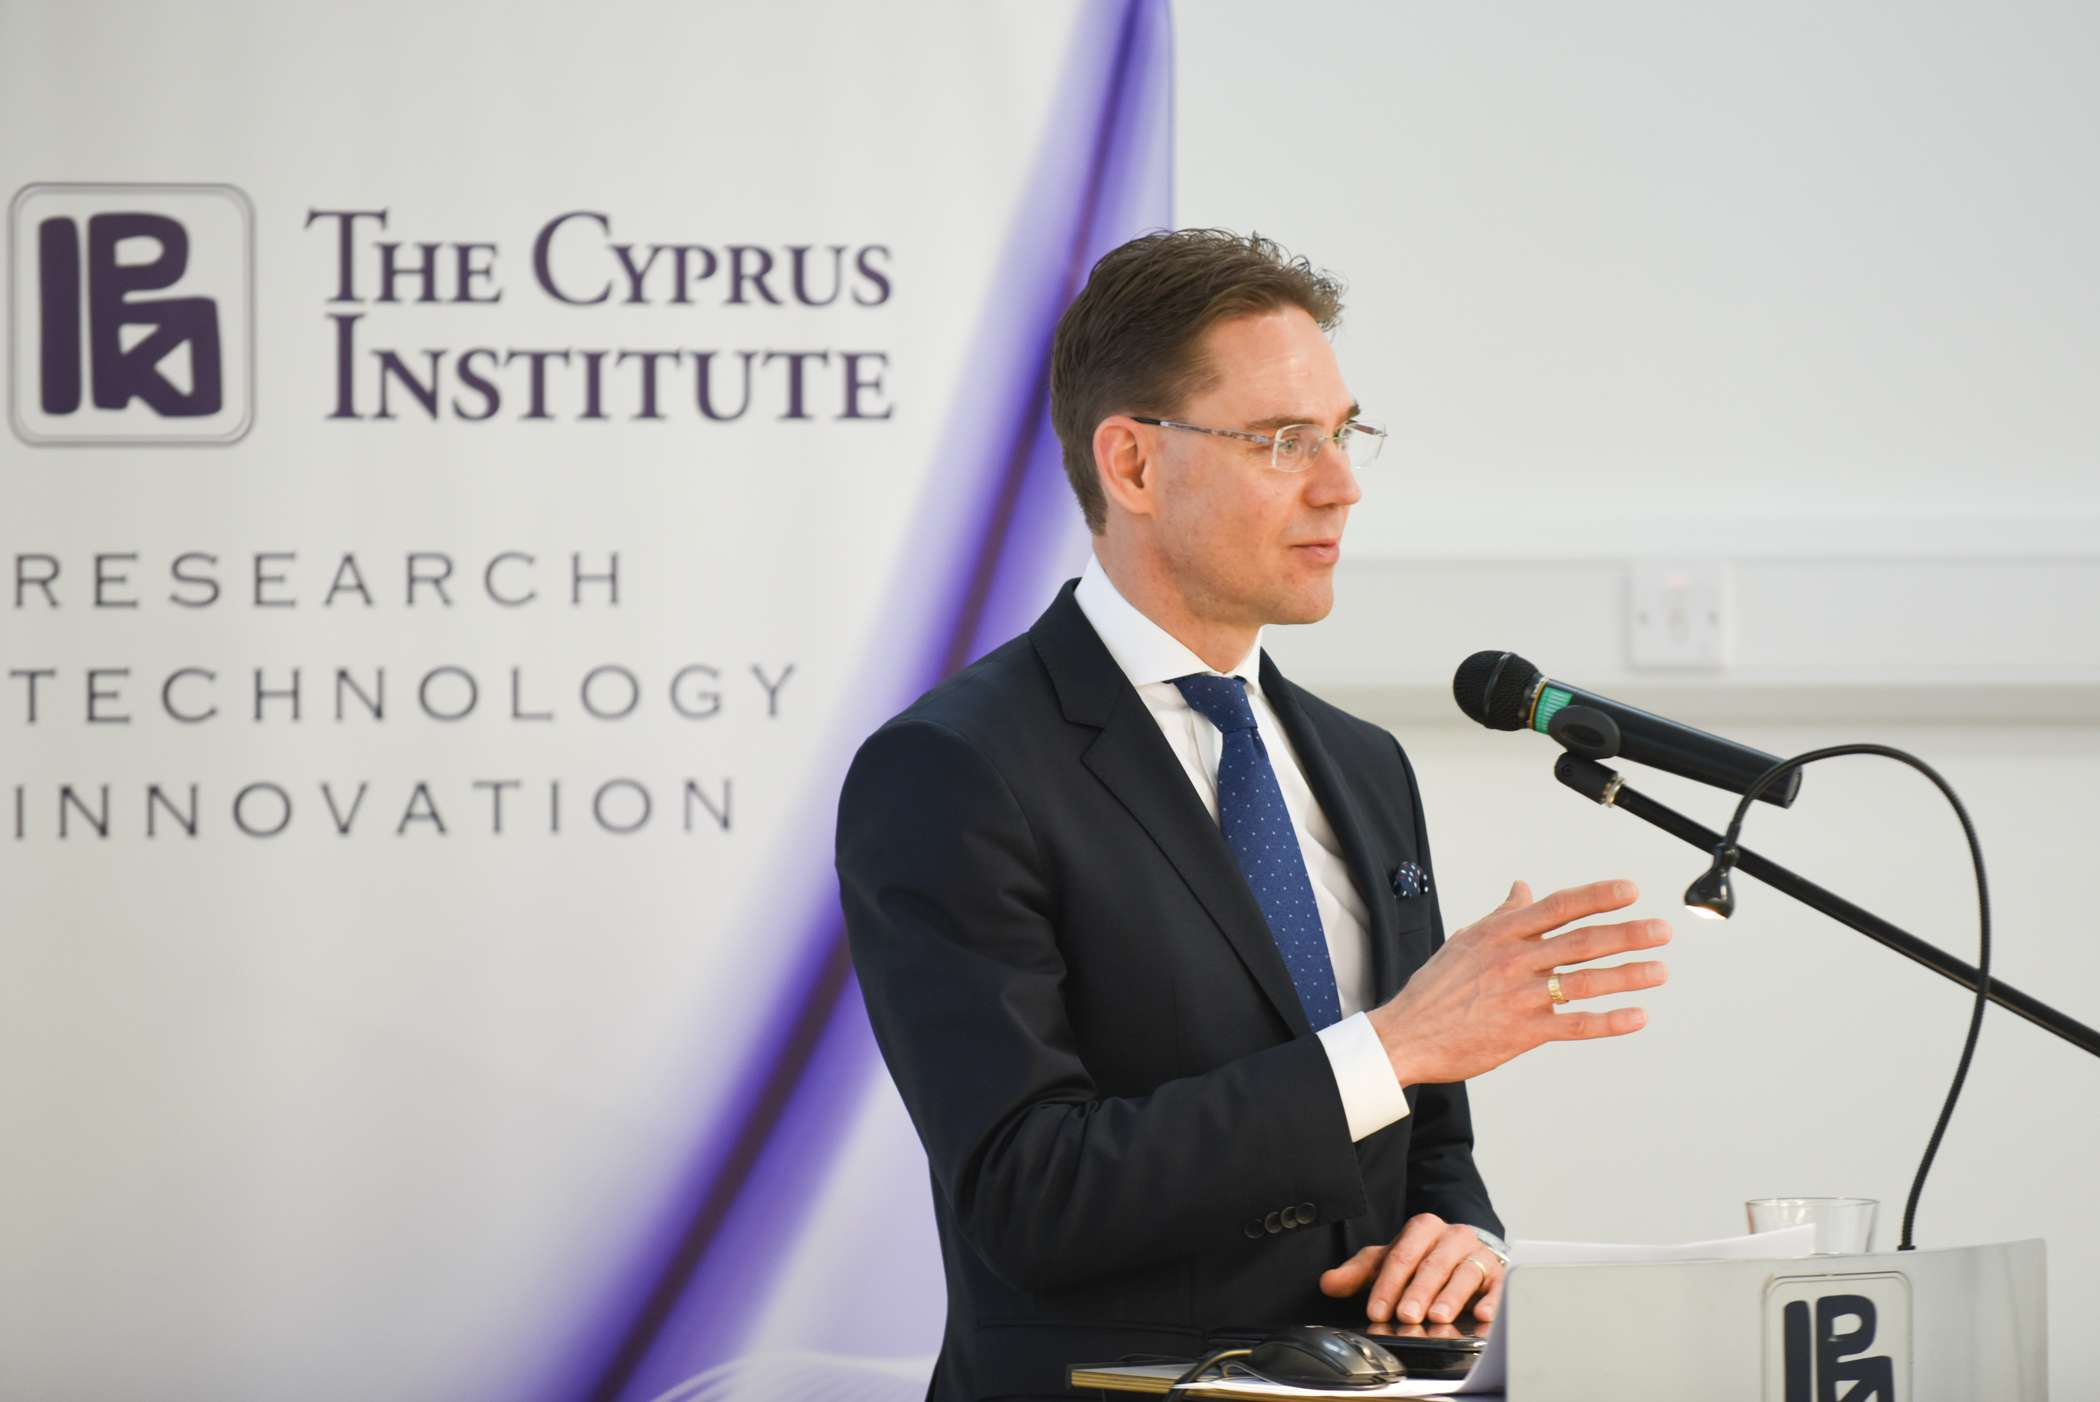 Mr. Jyrki Katainen, Vice President for Jobs, Growth, Investment and Competitiveness of the European Commission, visits CyI